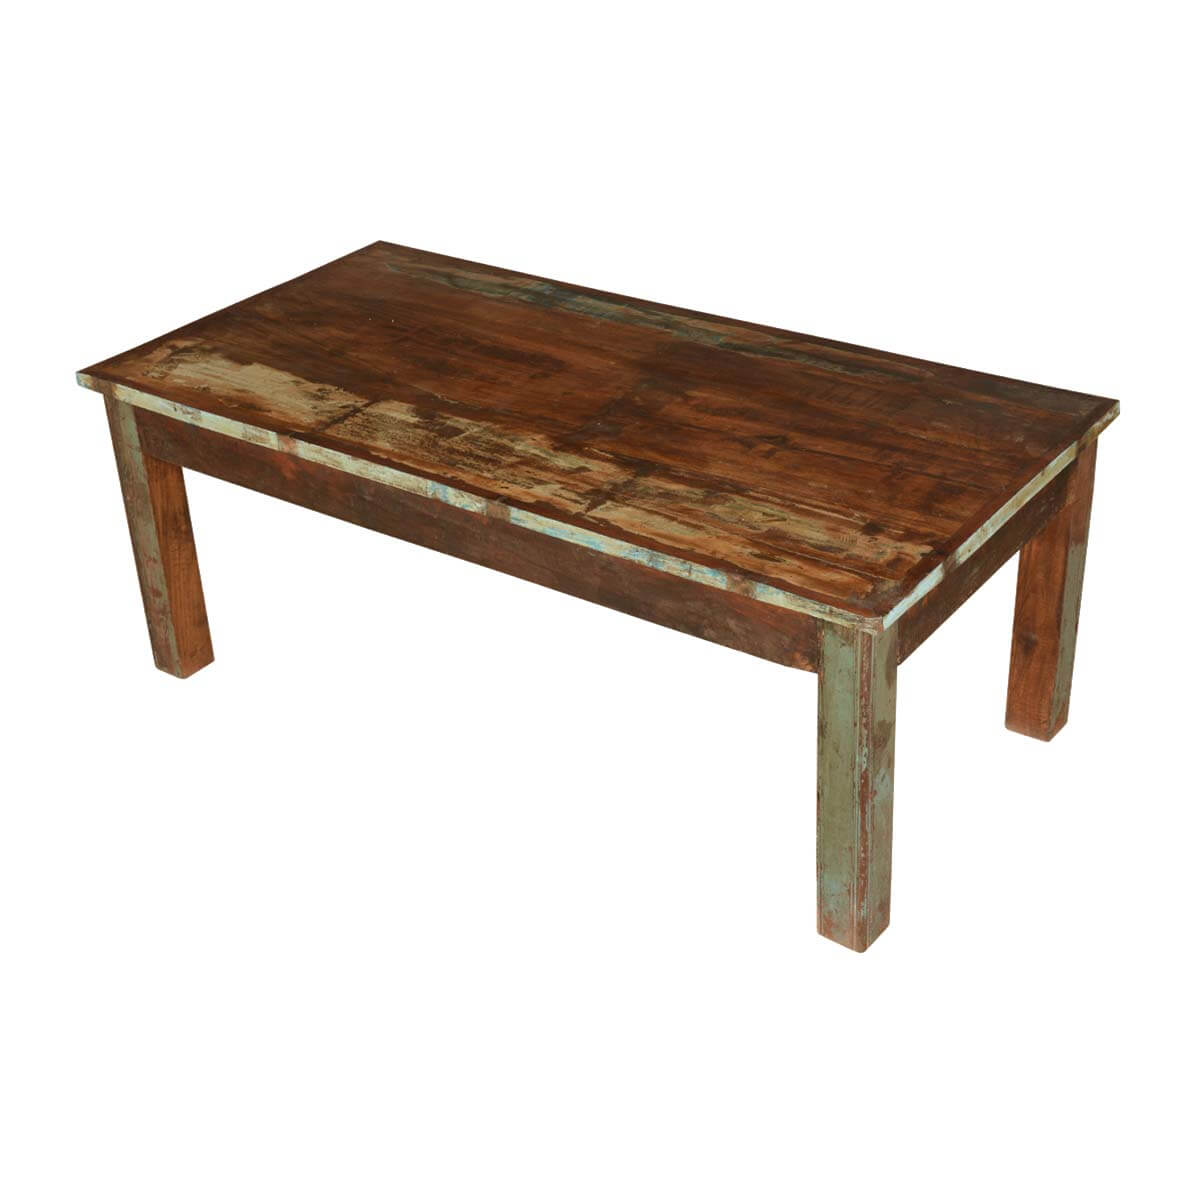 Farmhouse distressed reclaimed wood rustic coffee table for Rustic farm tables for sale